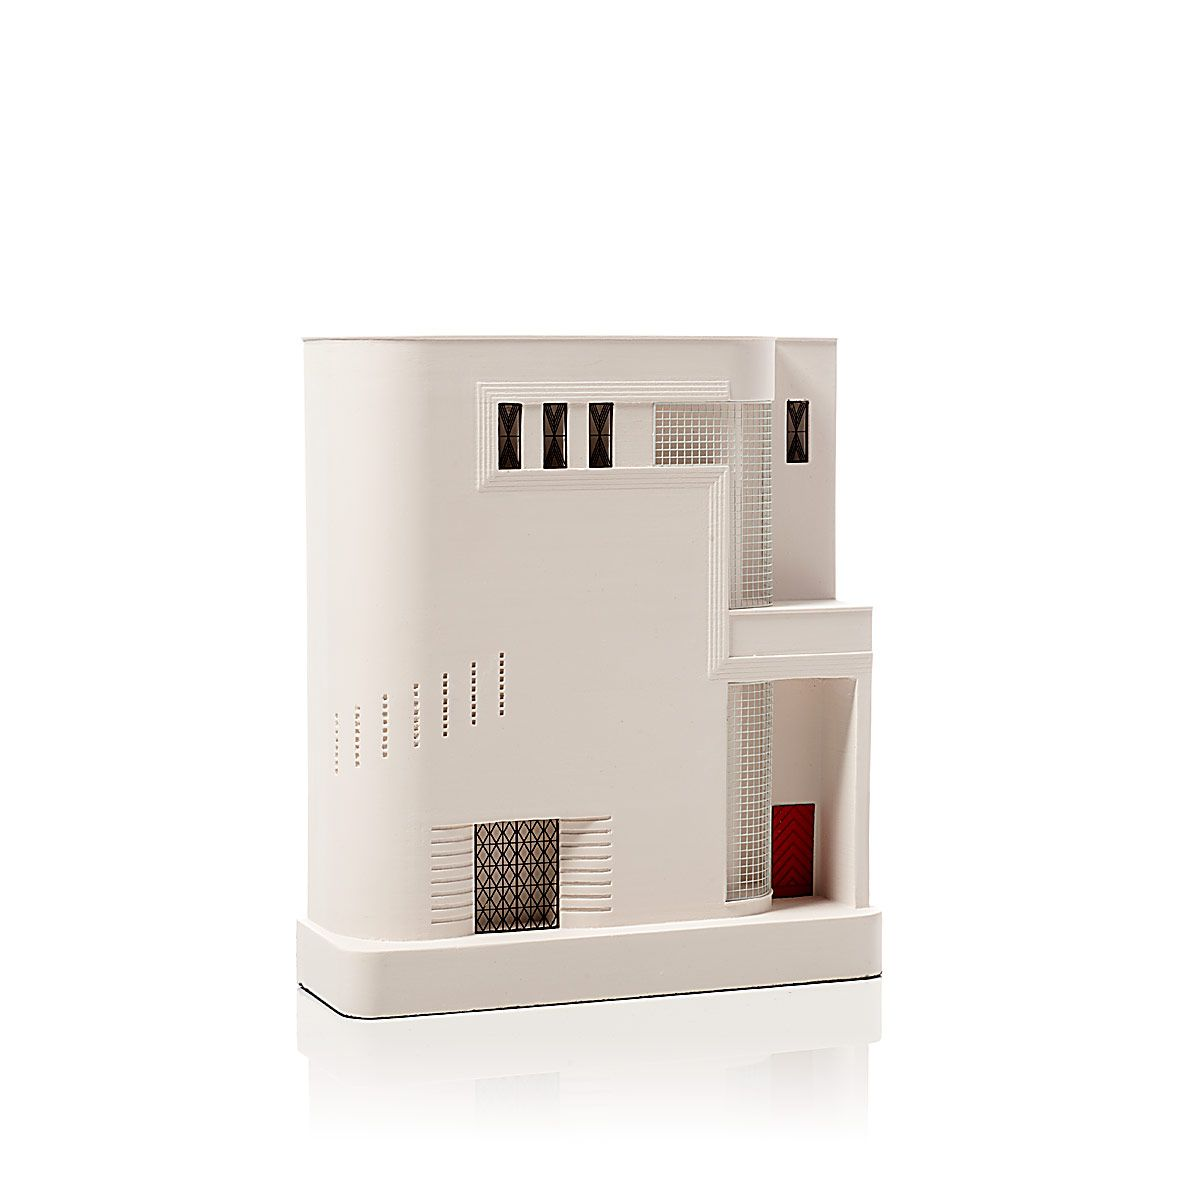 A plaster replica of an apartment building